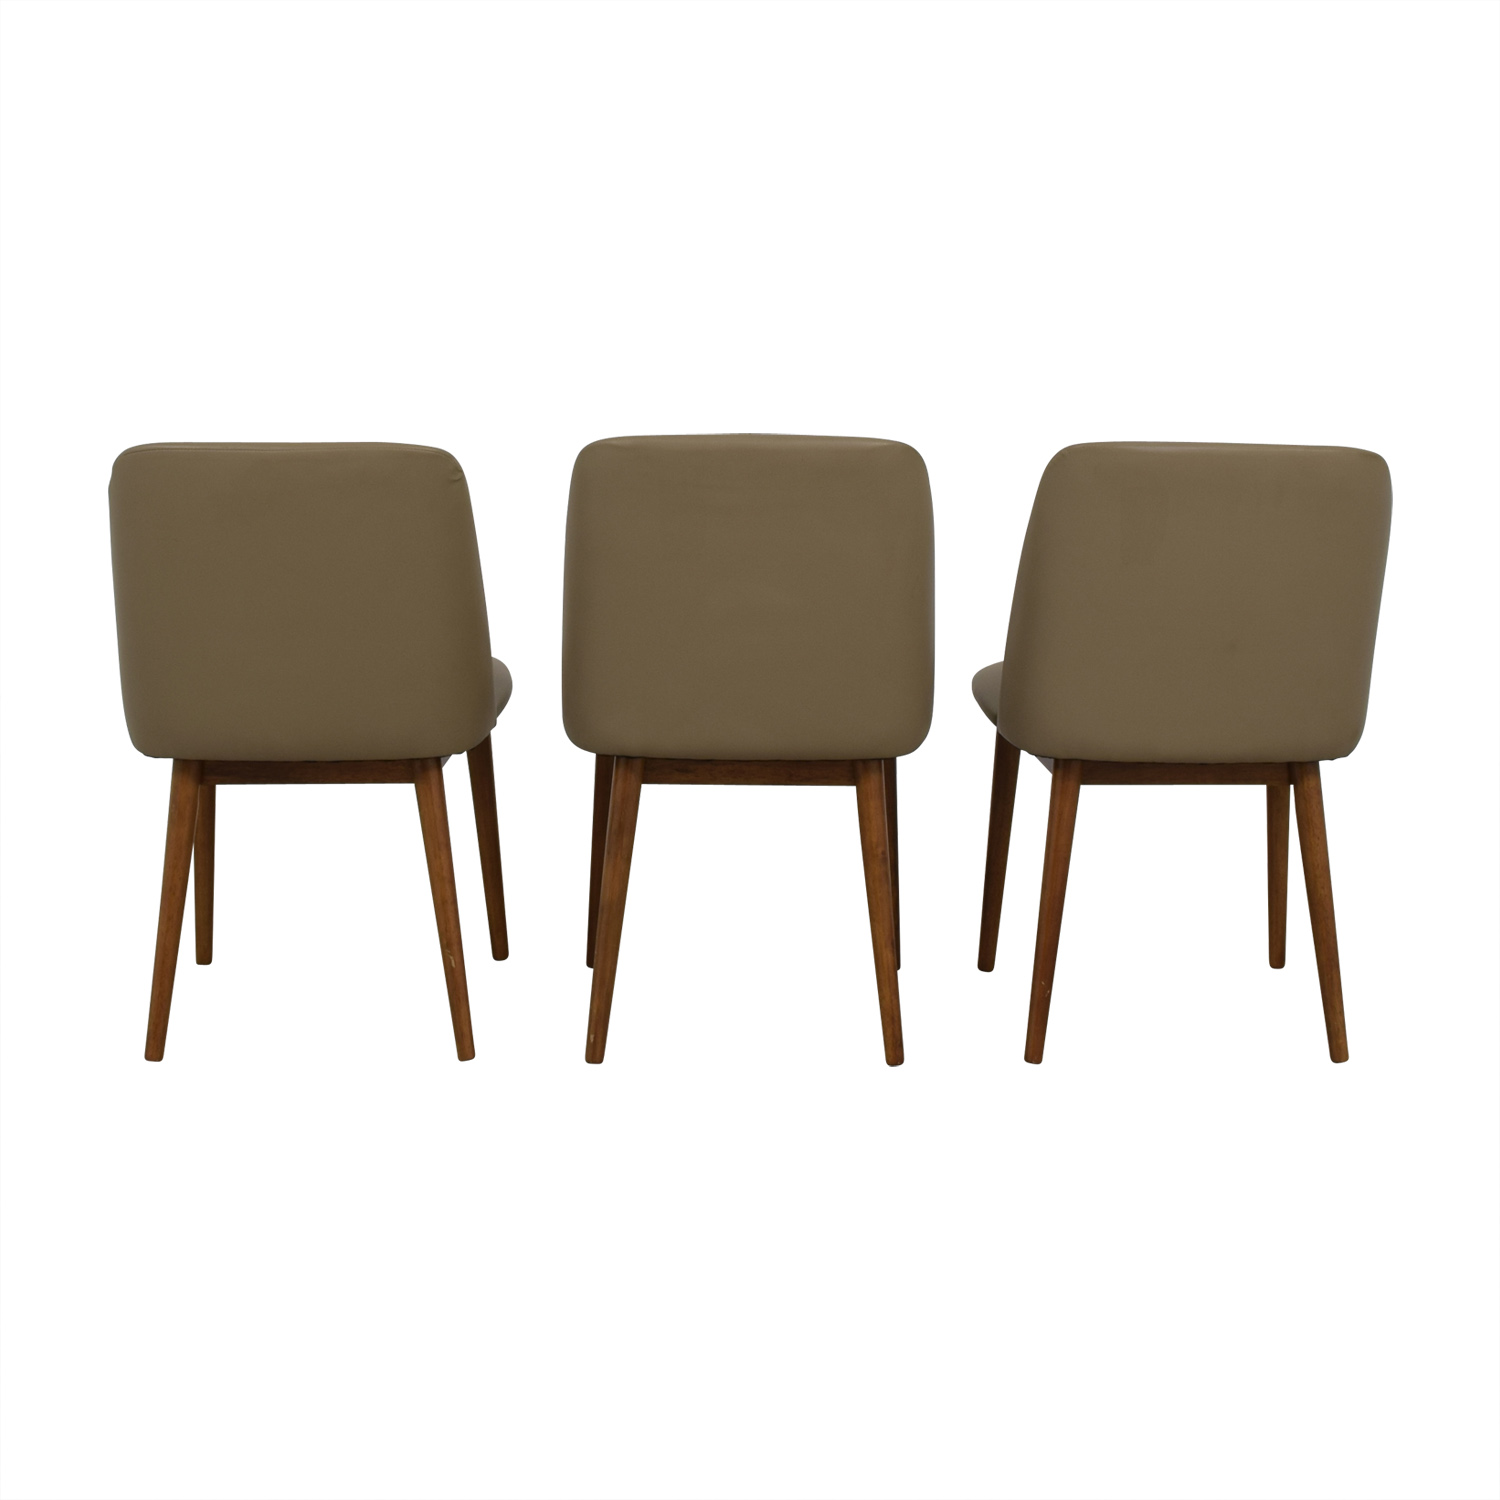 Beige Officer Chairs price